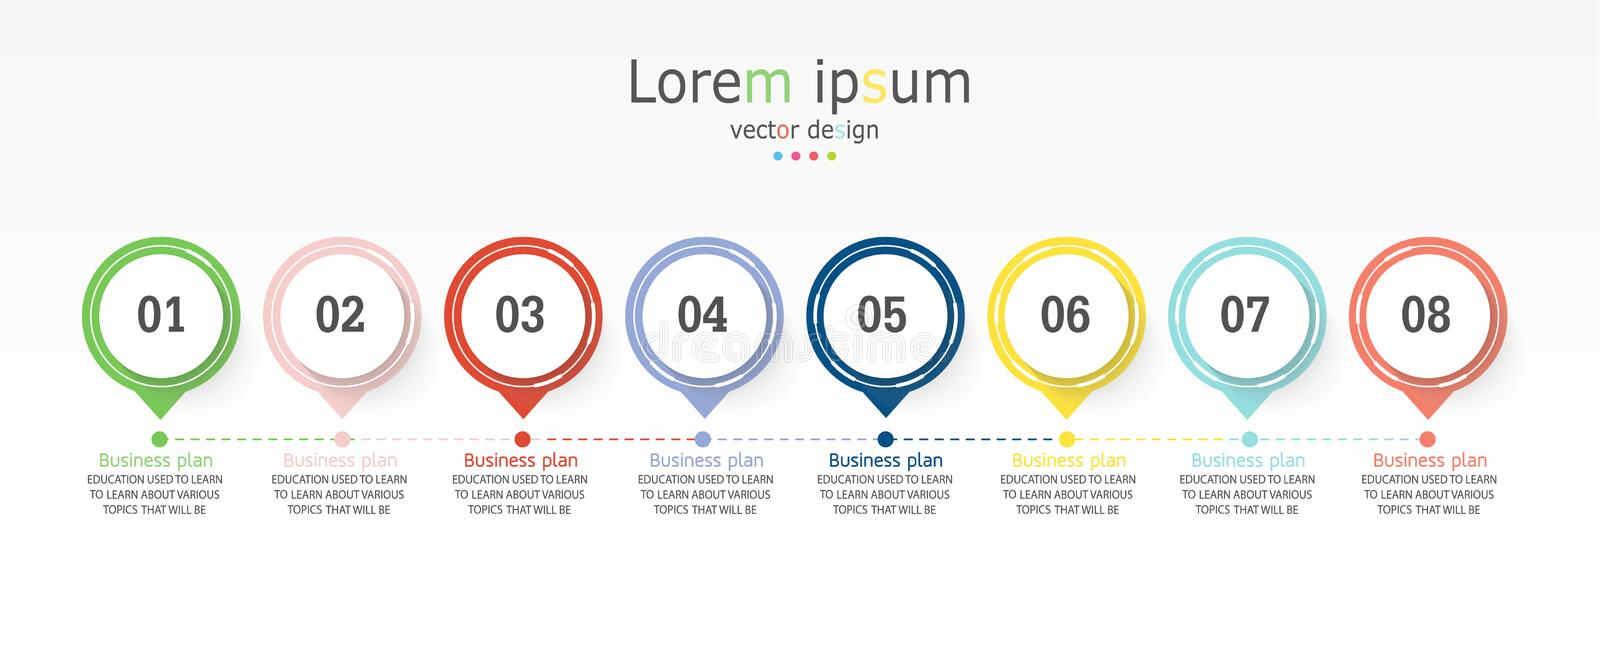 Diagram Business and Education By Step 8 step design   illustration royalty free illustration